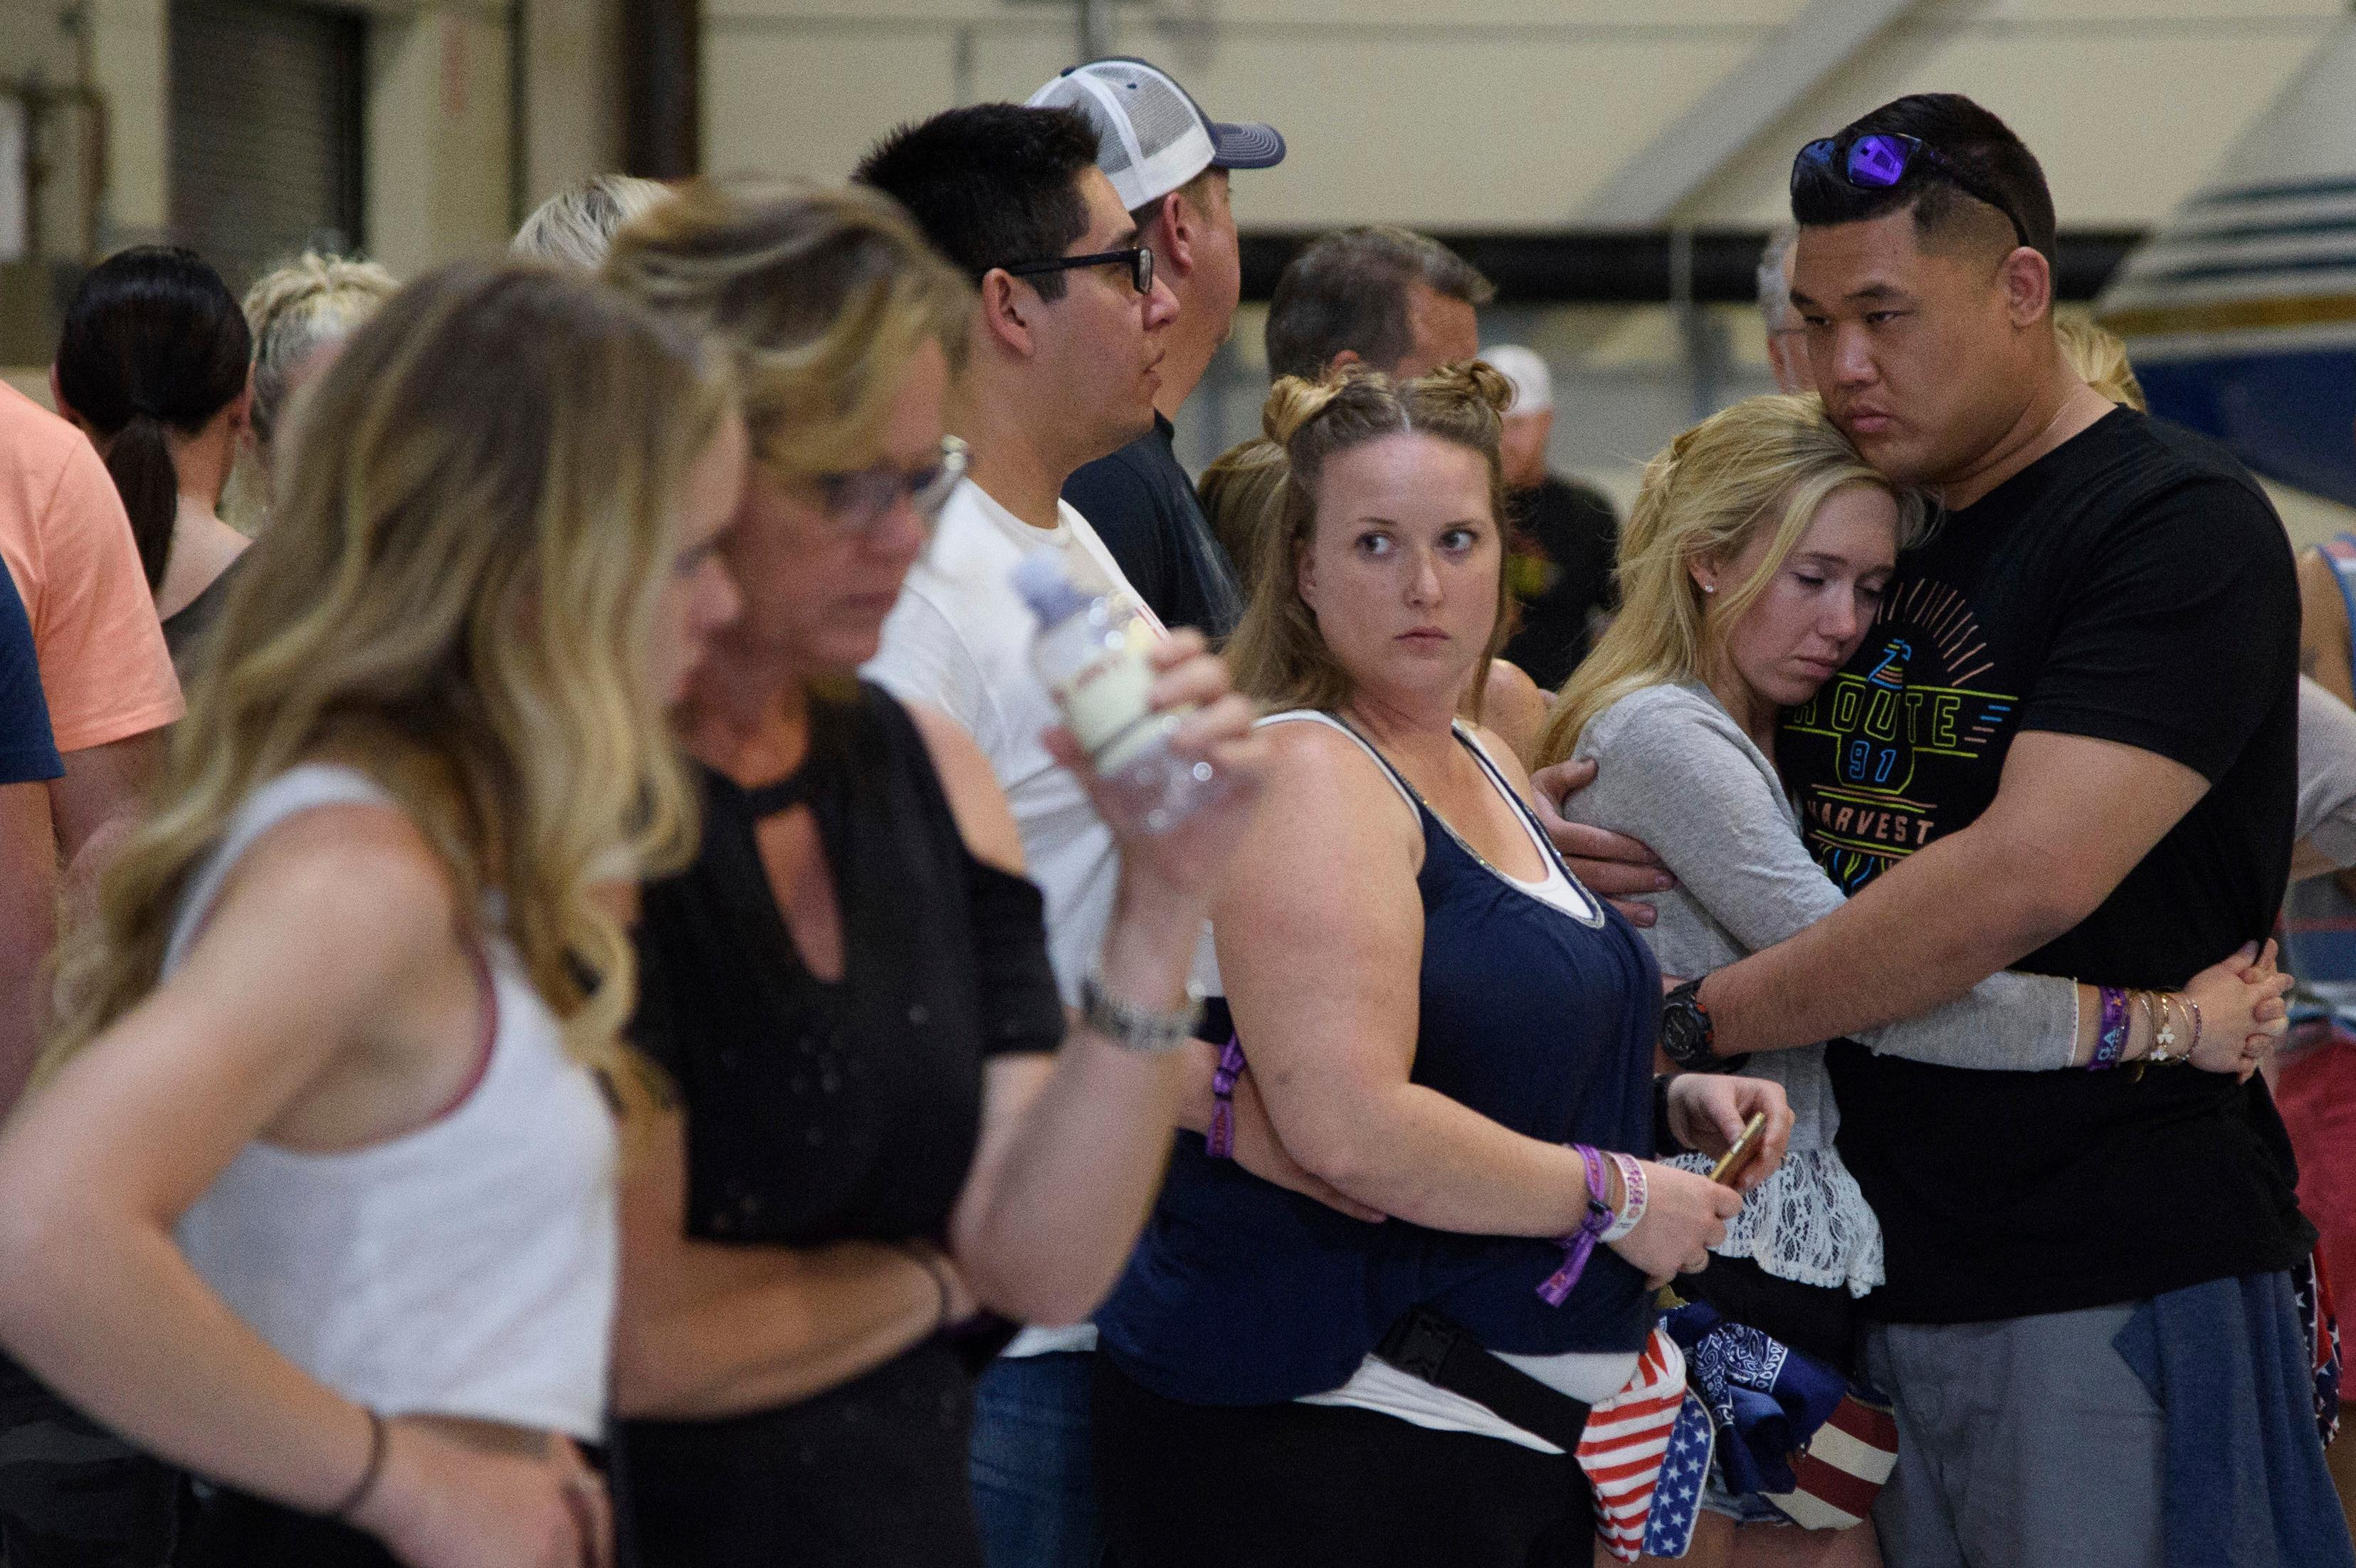 Concertgoers embrace as they wait early Monday, Oct. 2, 2017, inside the Sands Corporation plane hangar after a mass shooting in which dozens were killed  at the Route 91 Harvest country festival early Sunday. (Al Powers/Invision/AP)